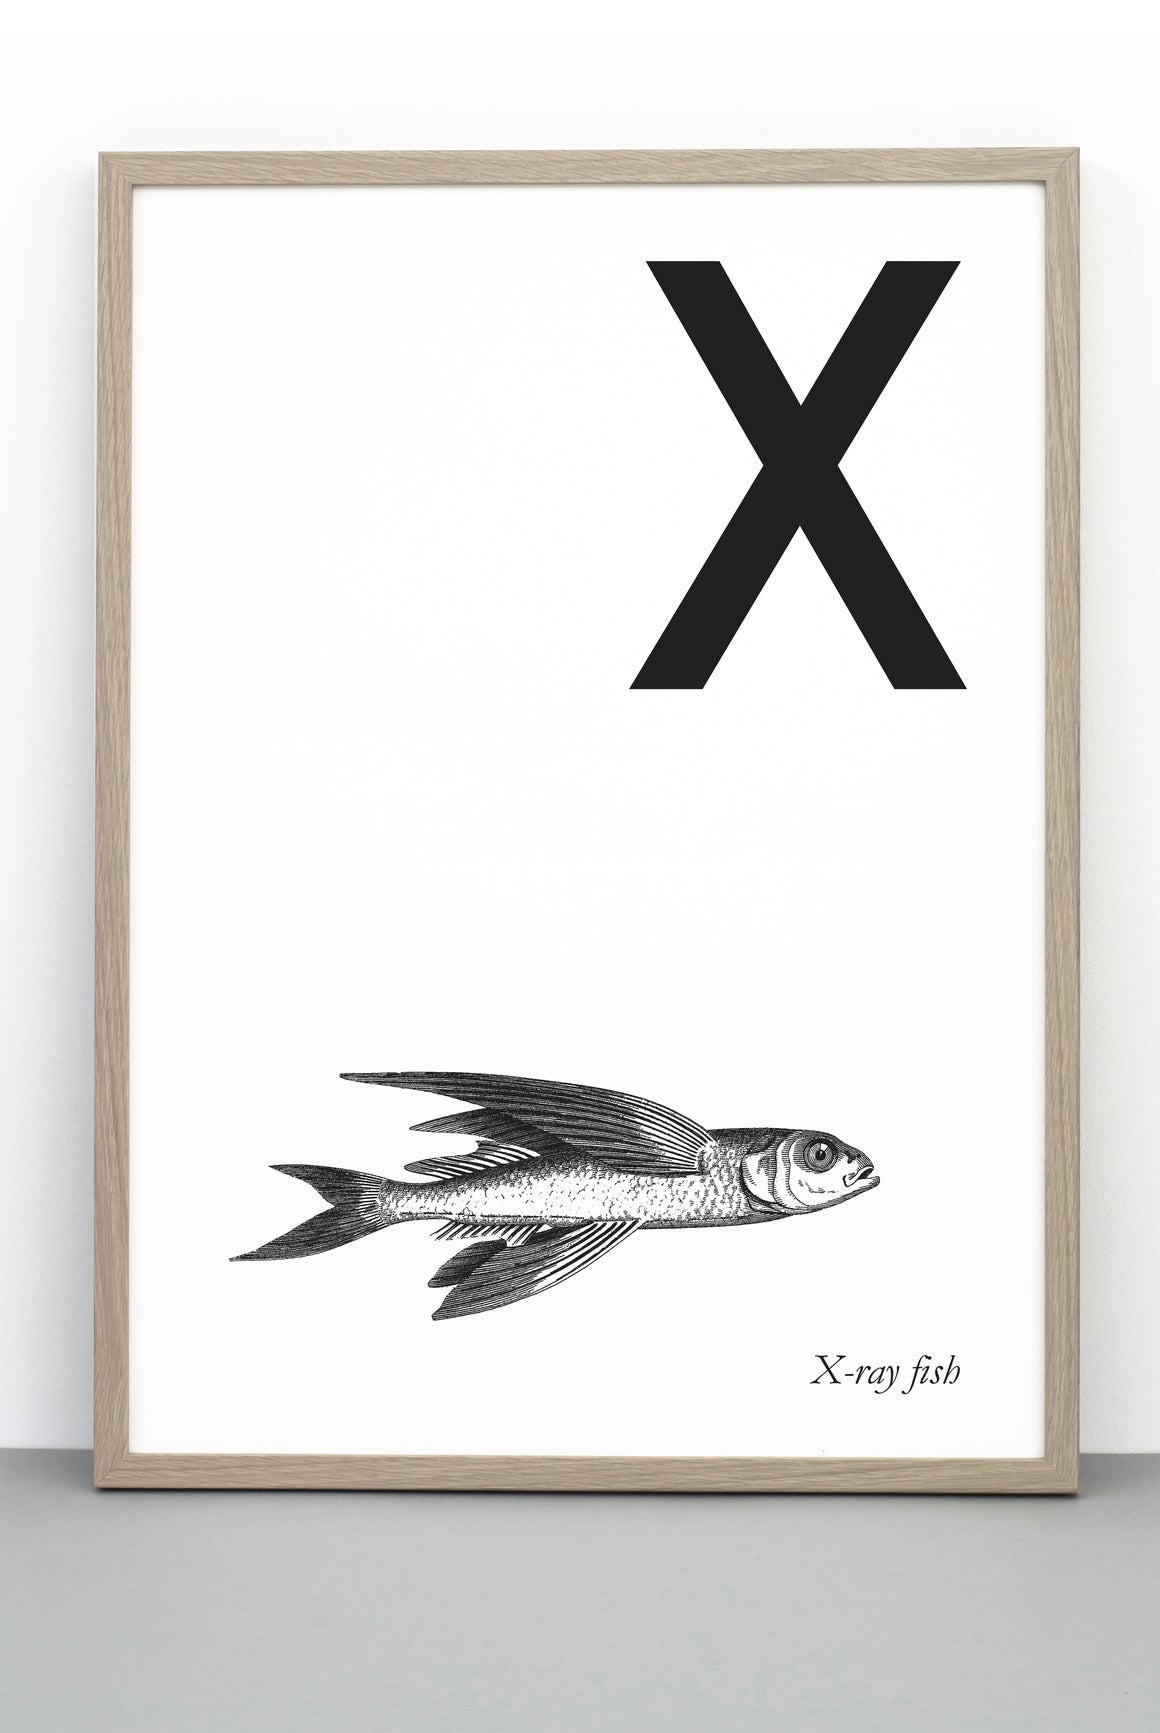 ANIMAL LETTER X, X-RAY FISH, X DOWNLOADABLE PRINT